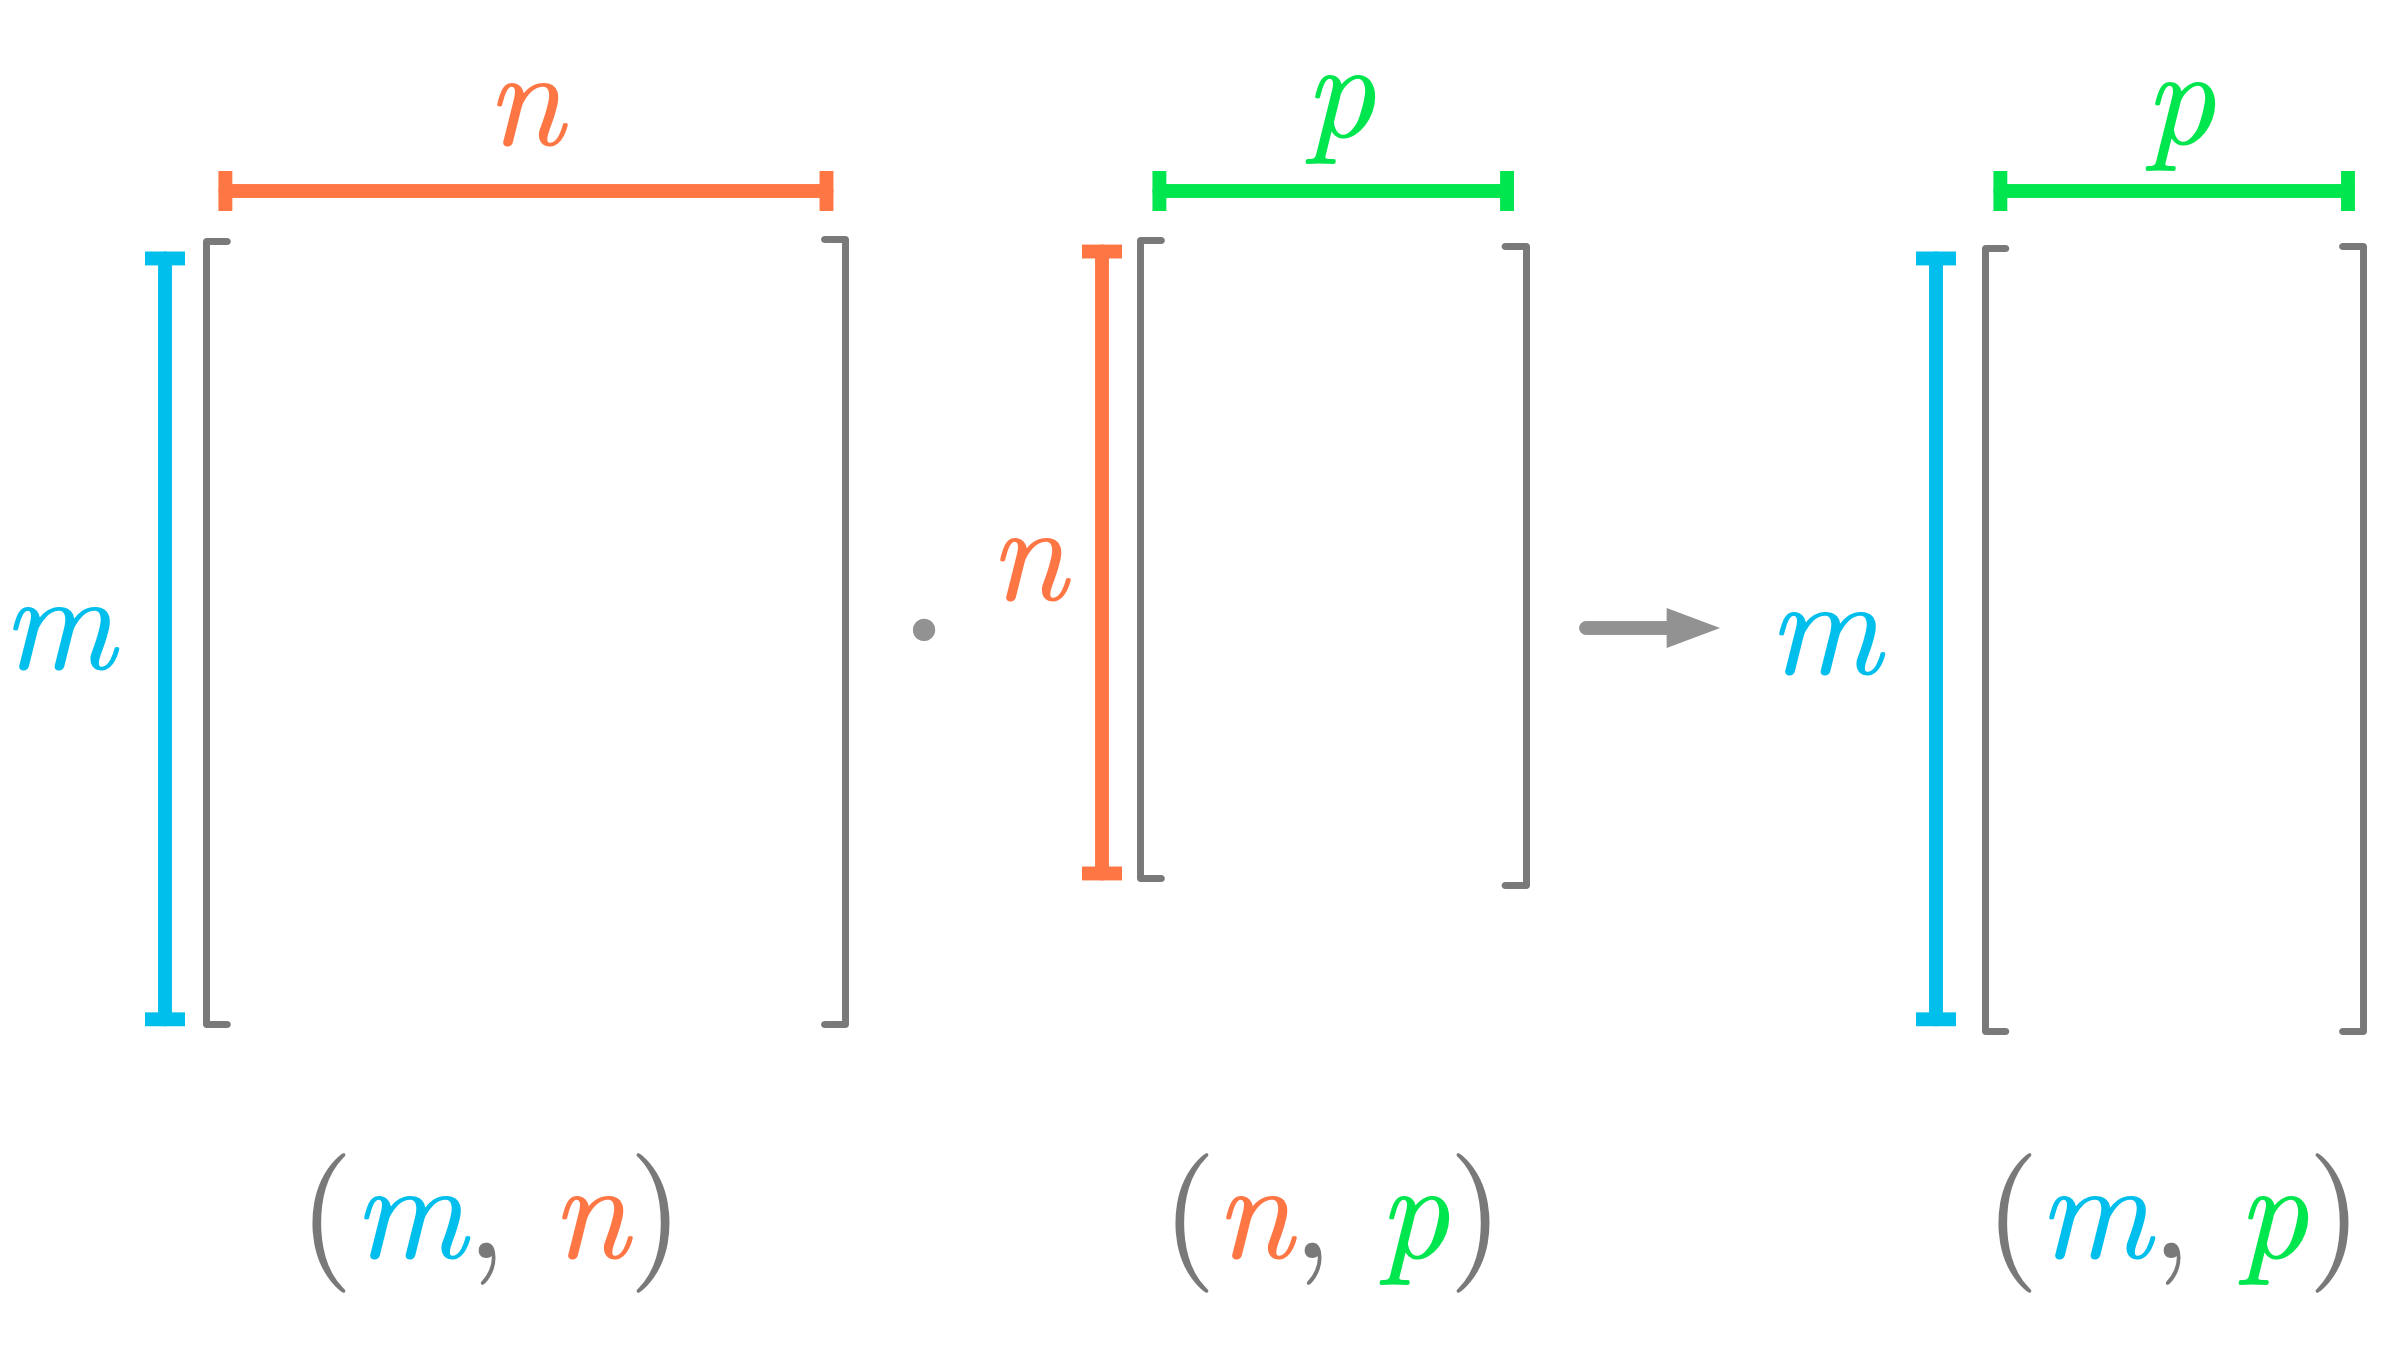 Figure 6: Shapes must match for the dot product between two matrices.